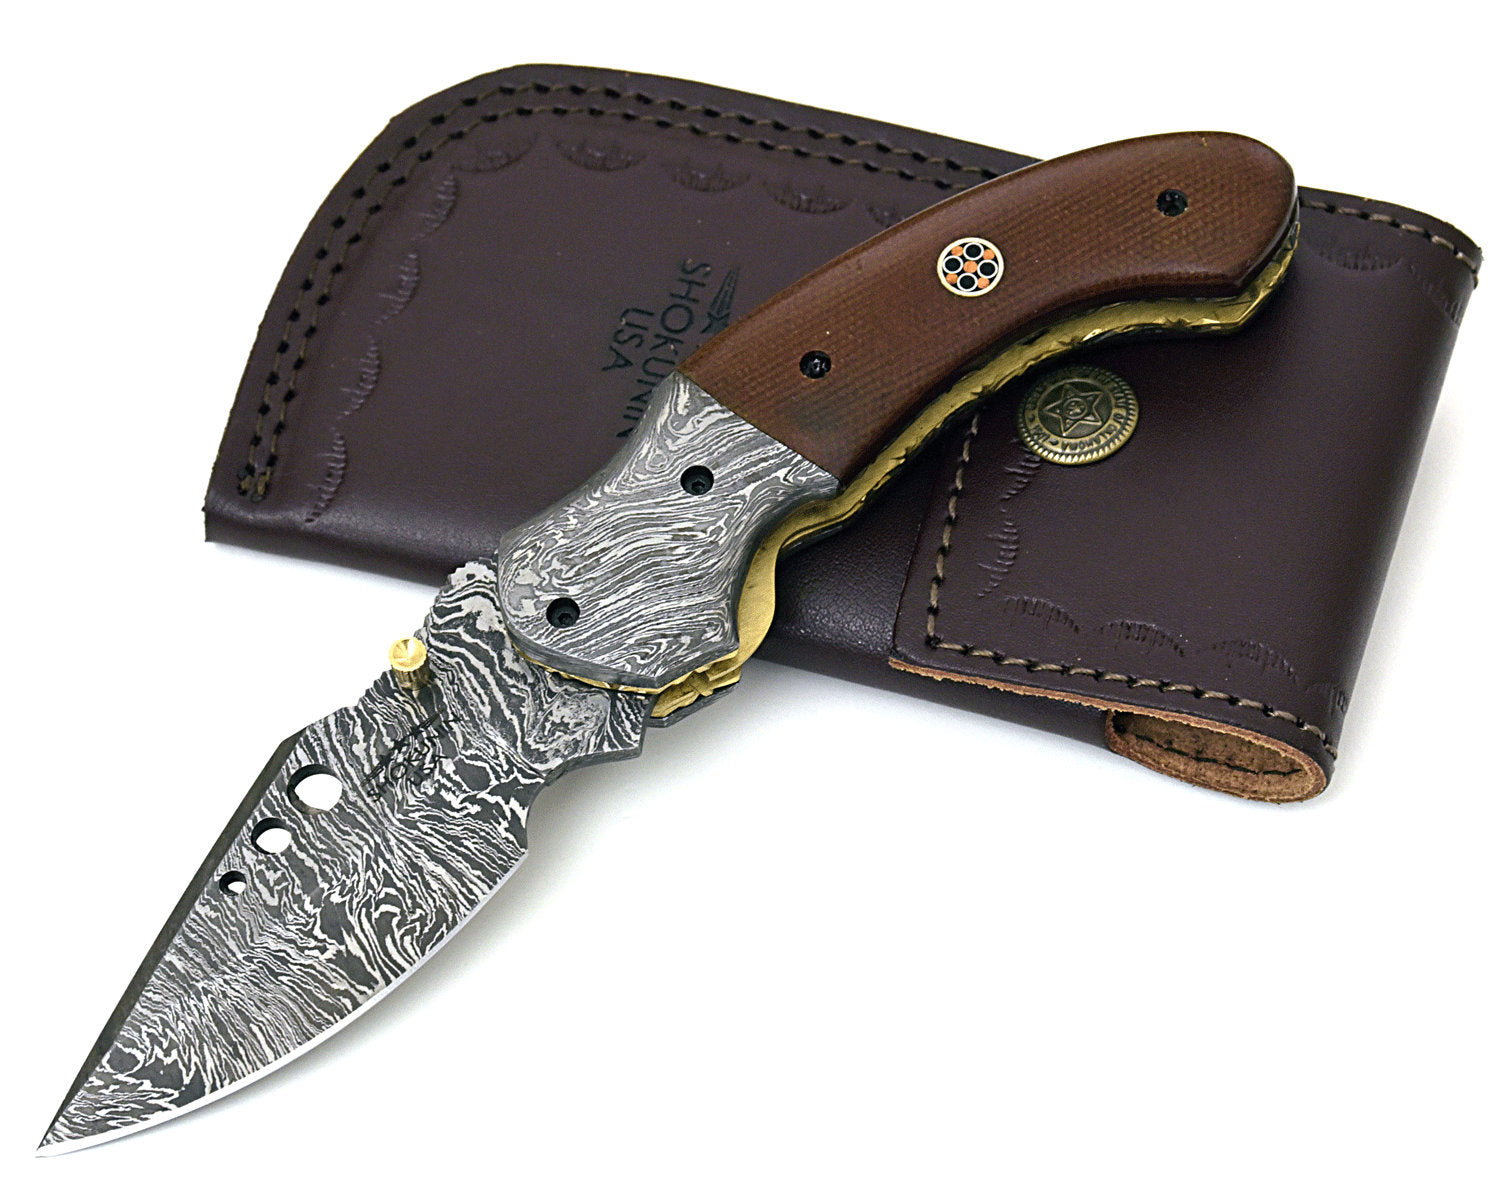 POCKET KNIFE, folding knife, every day carry, Damascus folder pocket knife, folding pocket knife, Micarta handle, Custom - SHOKUNIN USA